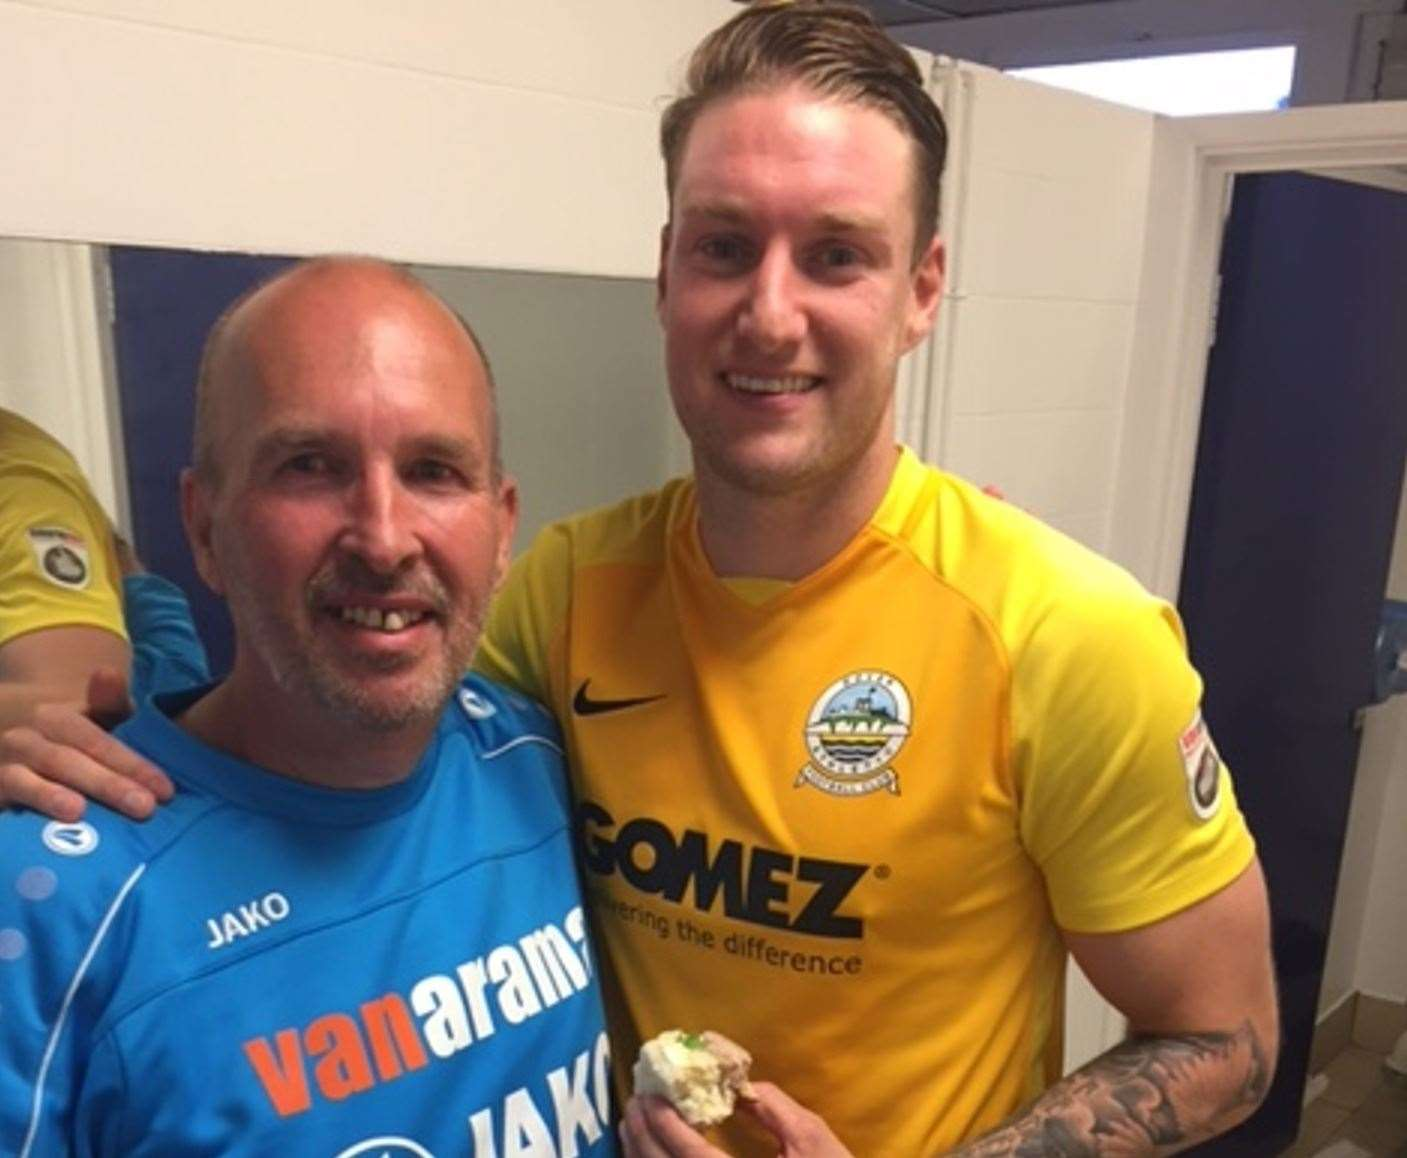 Dover kit man Richard Harvey (left) with Ryan Bird after their win at Tranmere in 2018/19